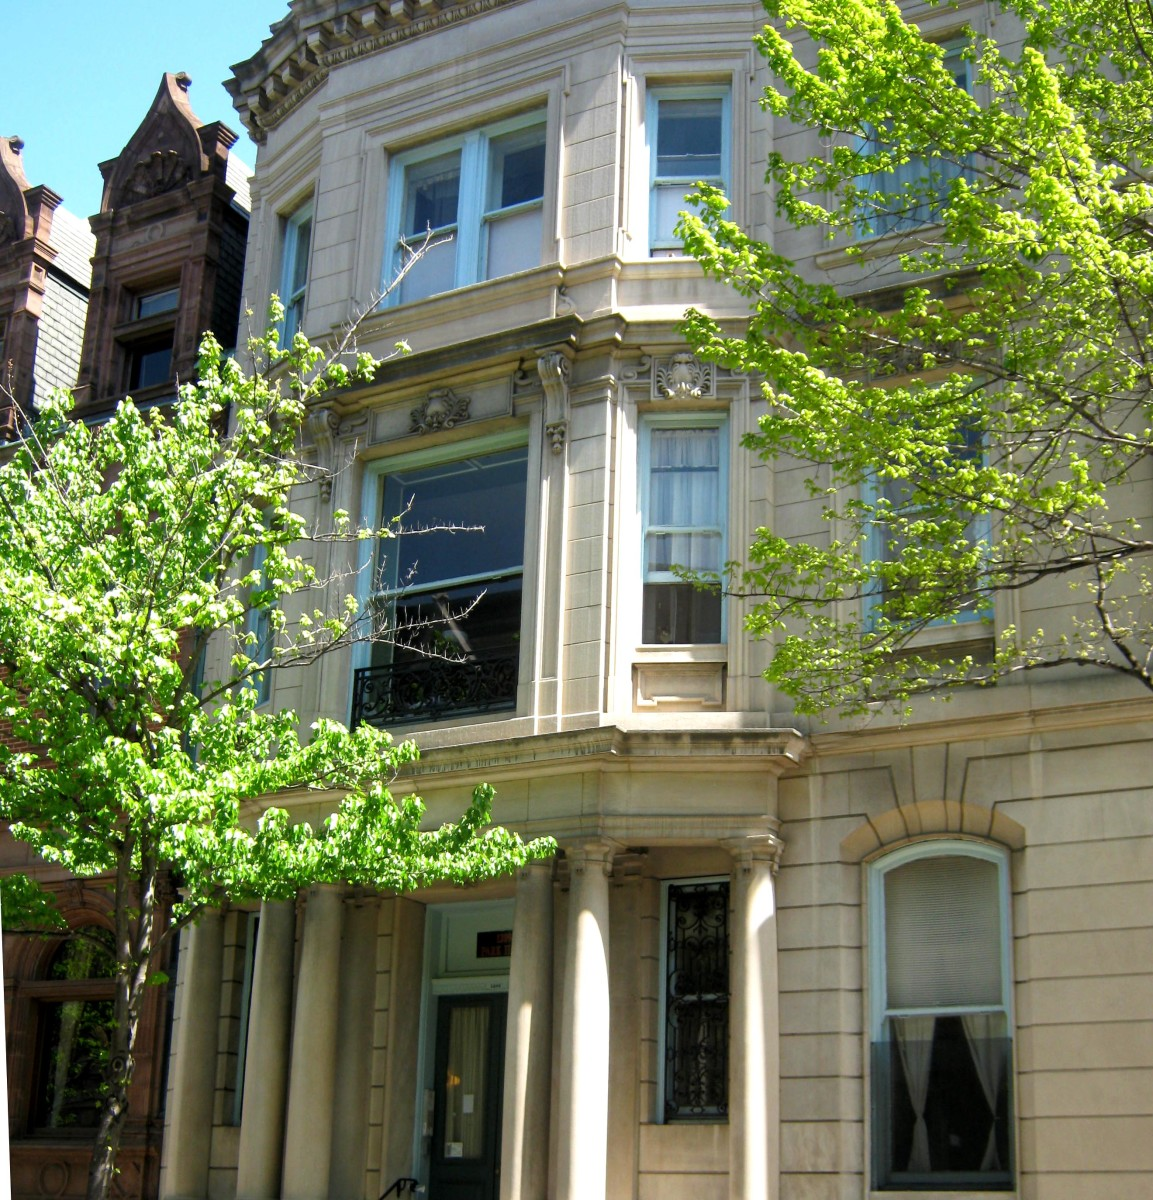 Bowed front row house with columns